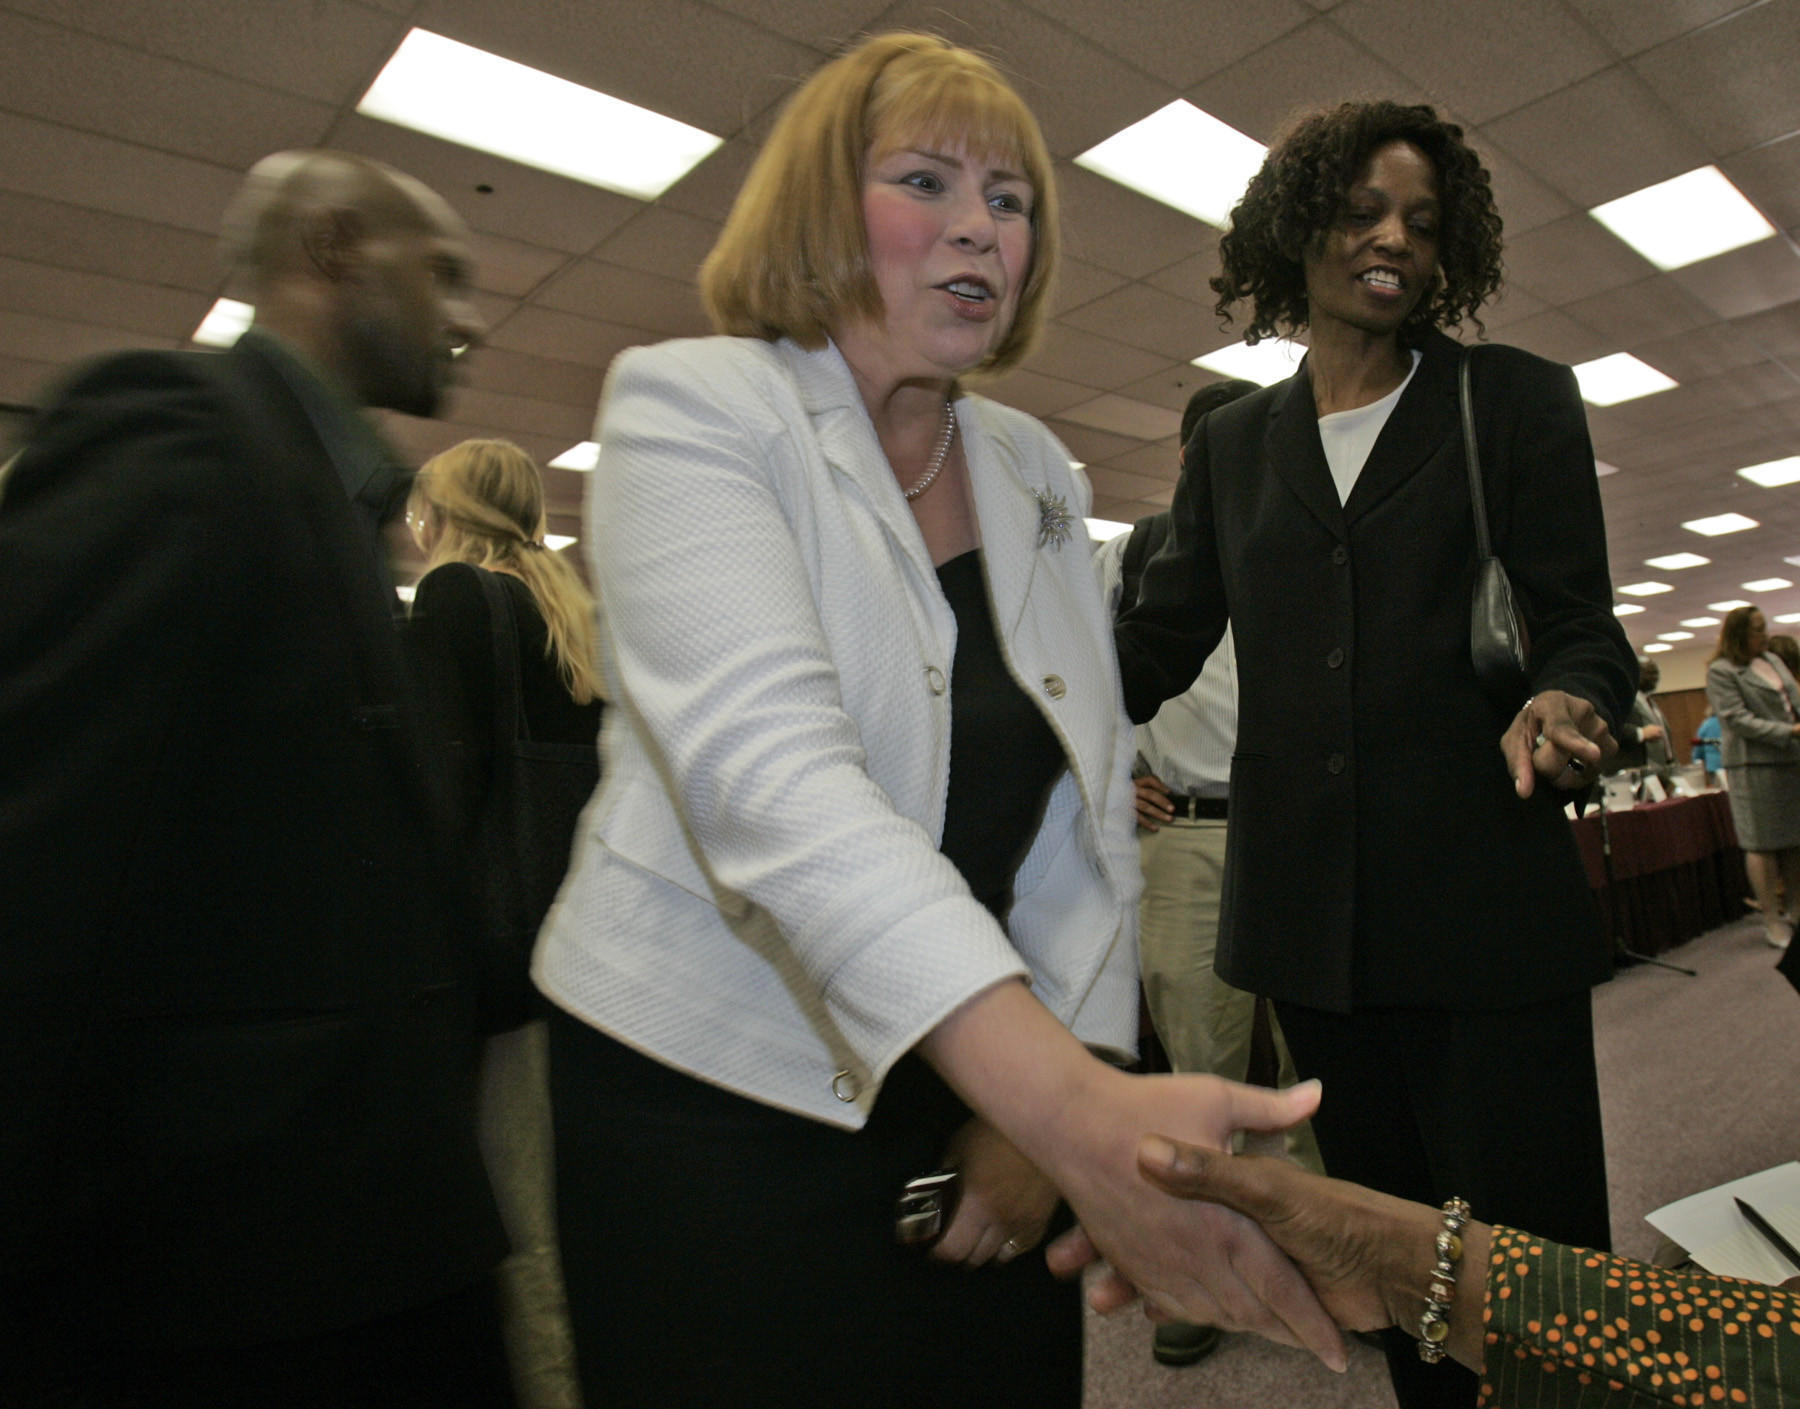 State Sen. Jenny Oropeza, center, greets audience members at a candidates forum in 2007.